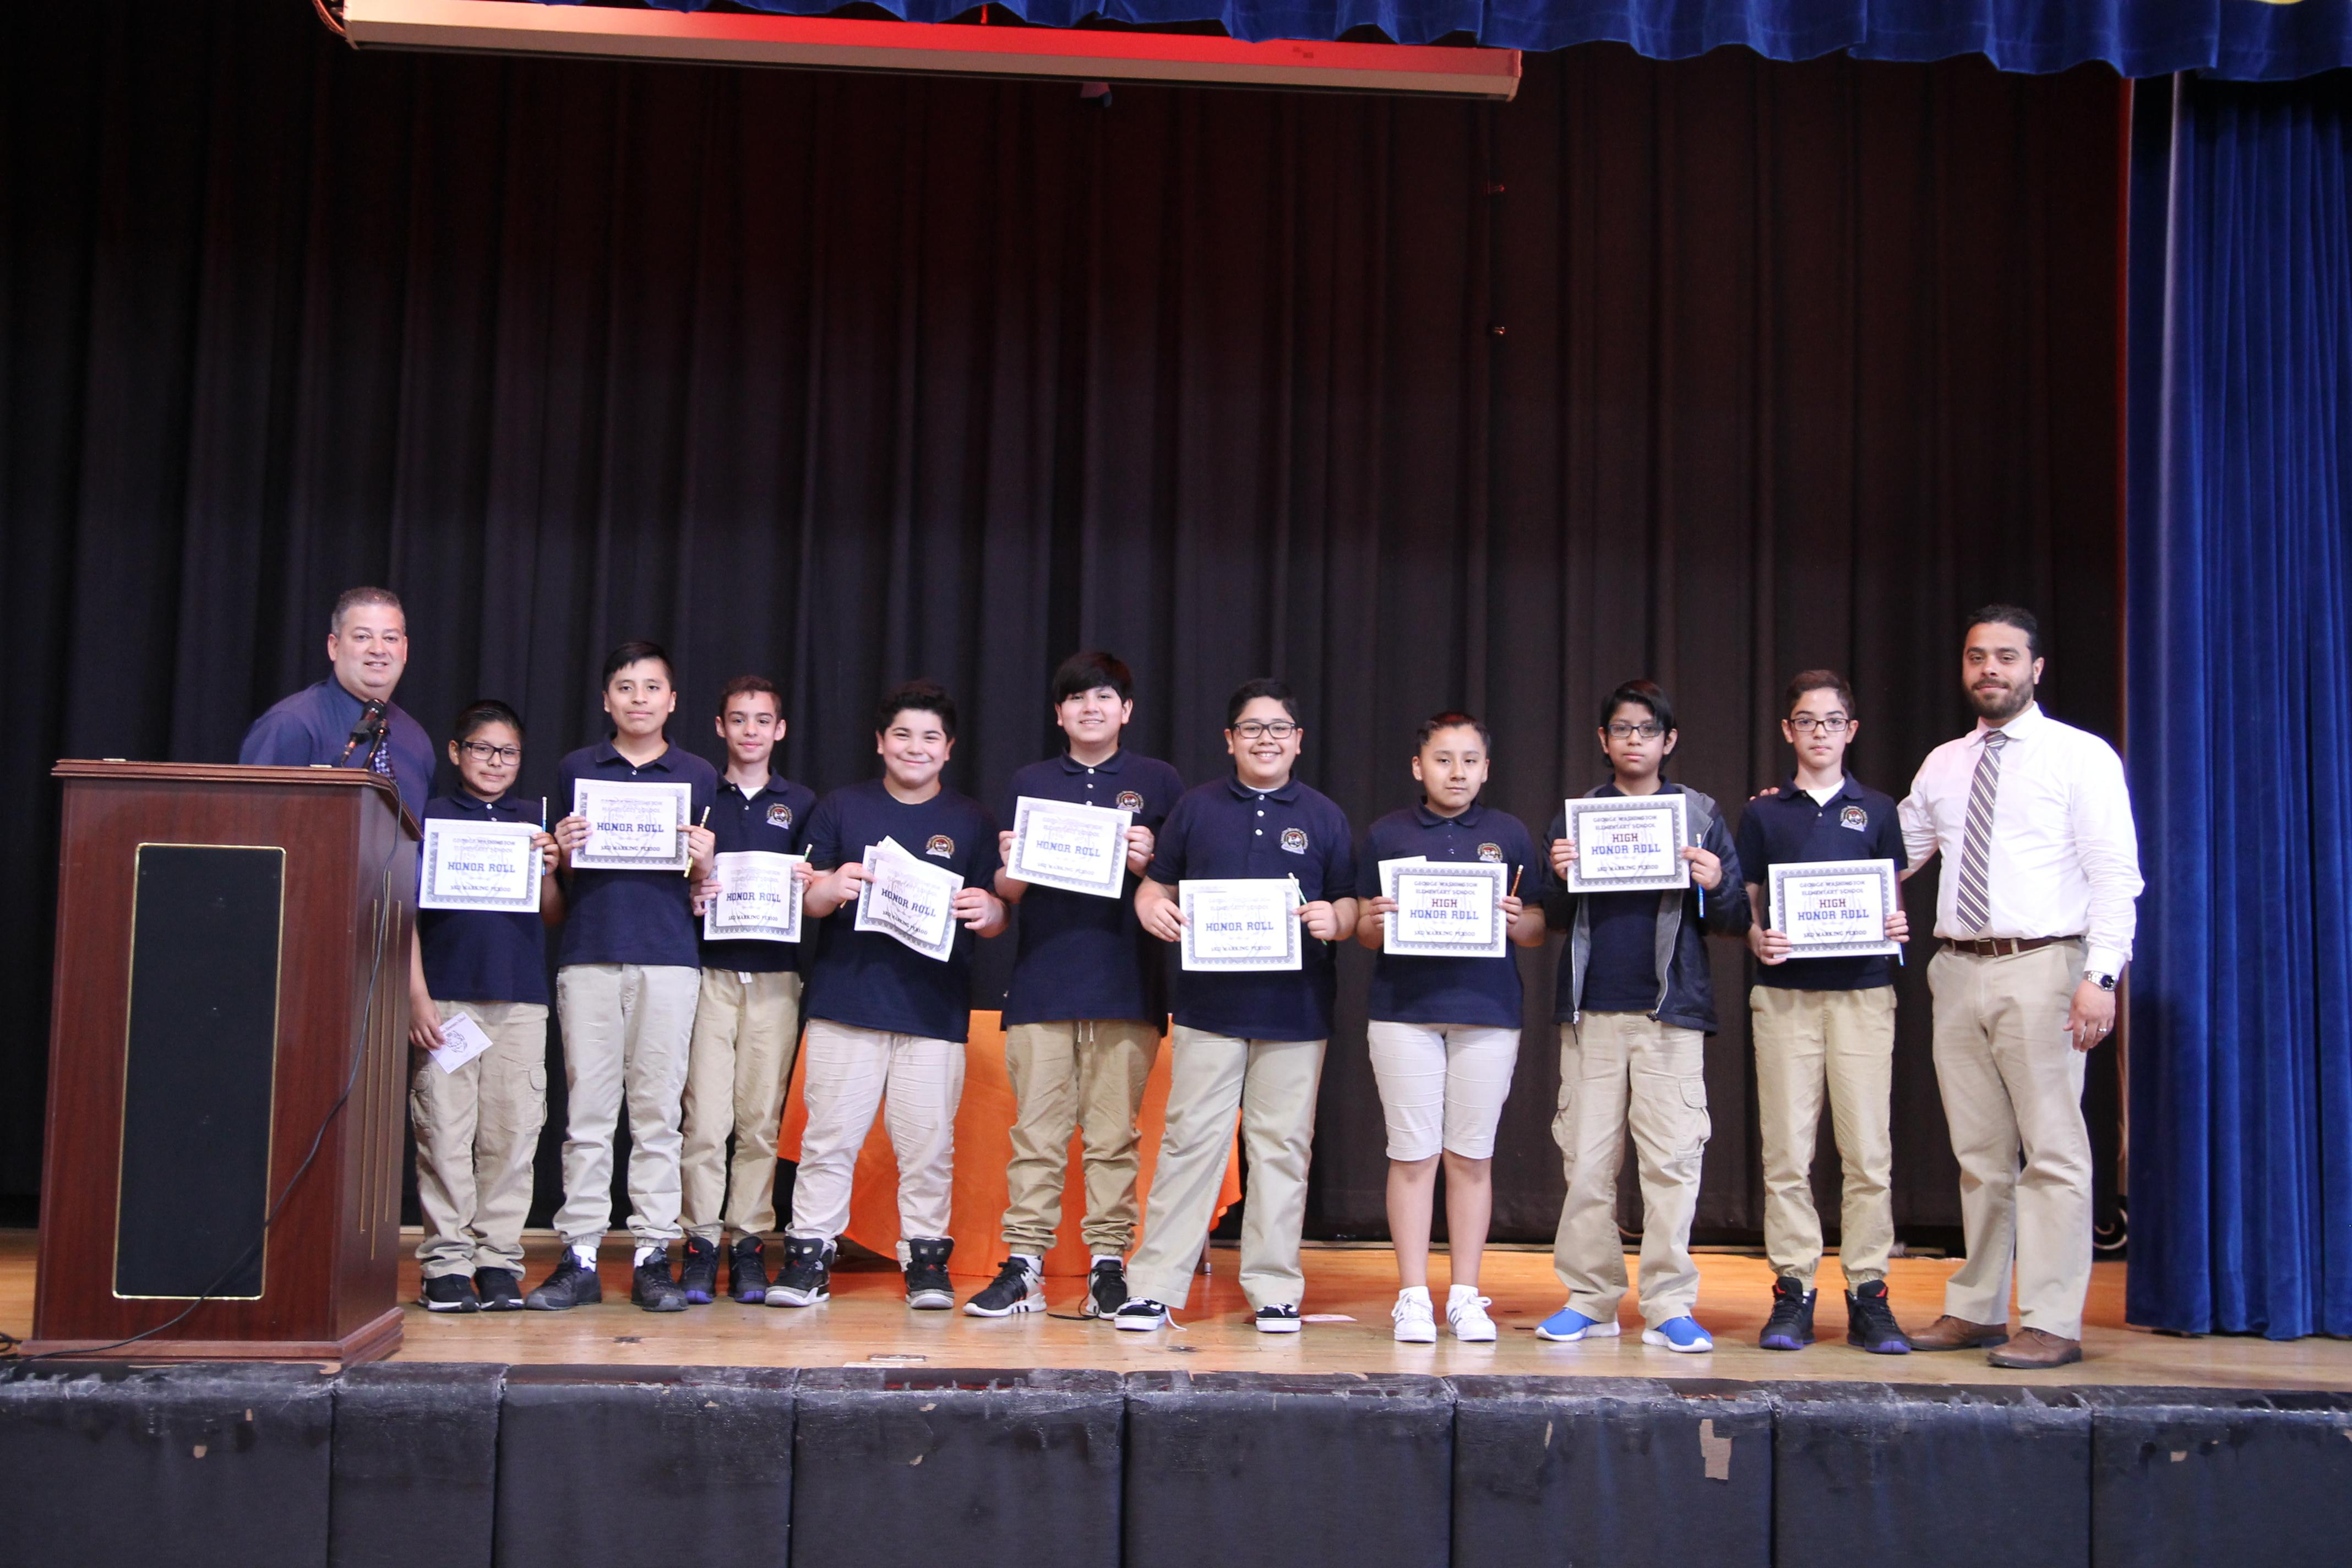 5th grade honor roll students